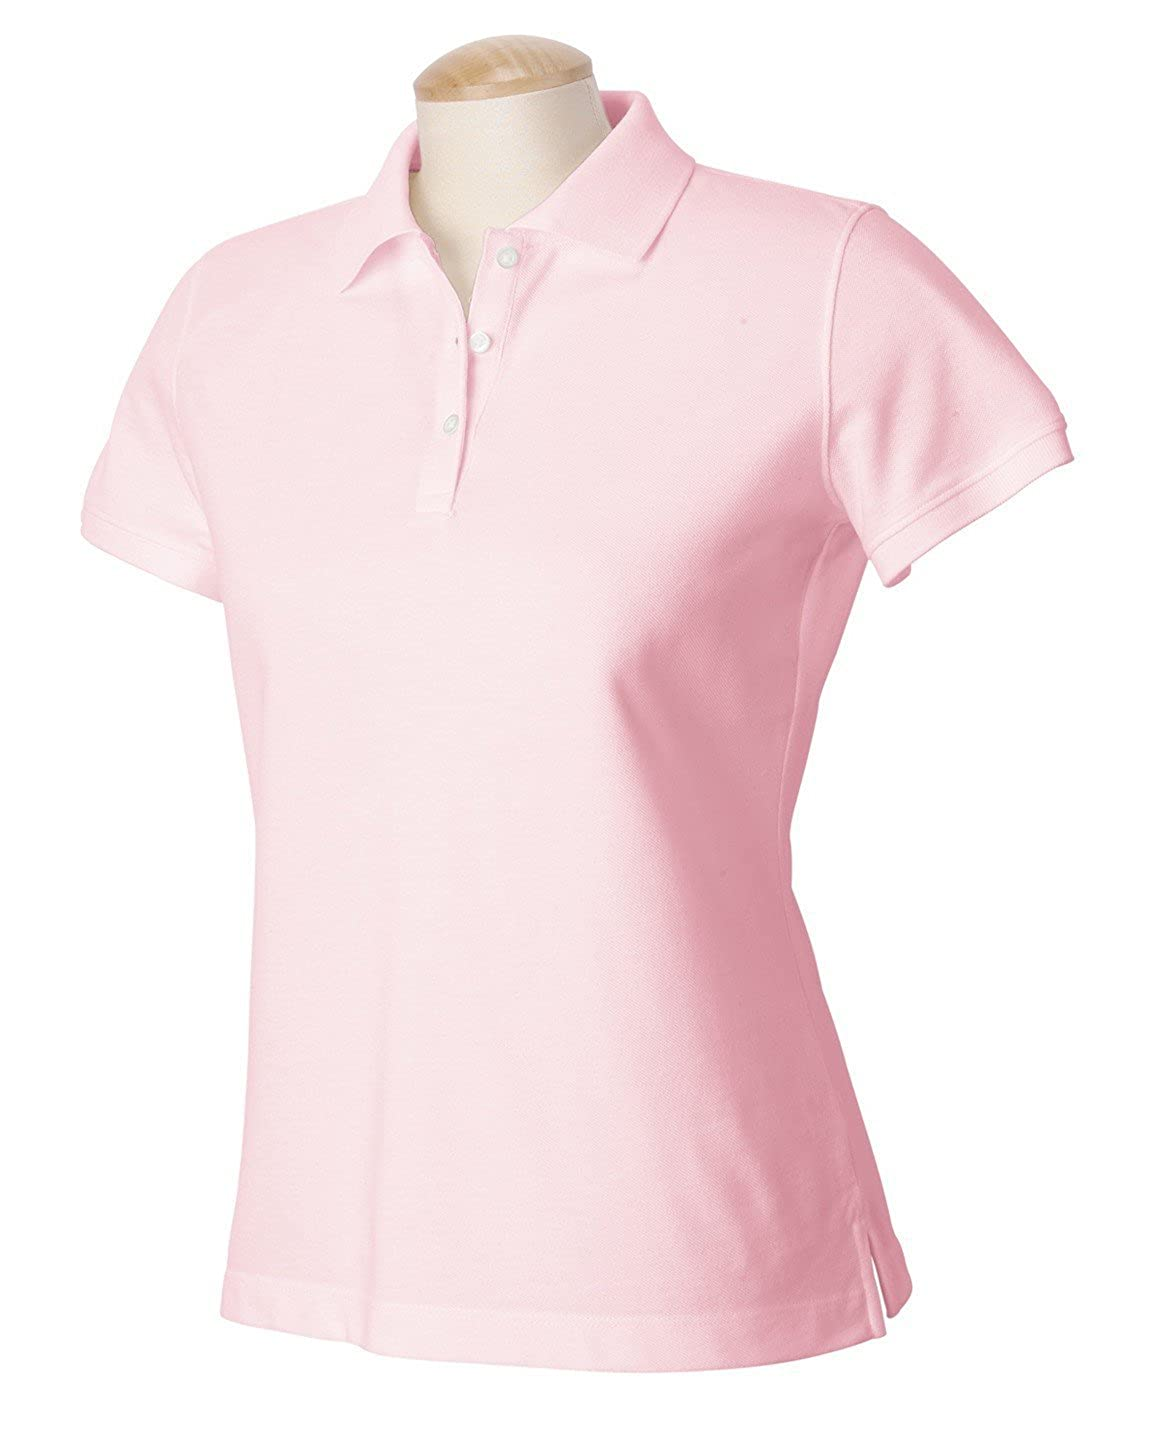 Devon & Jones Women's Short Sleeve Five-Star Performance Pique Polo Shirt D320W Devon & Jones D320w